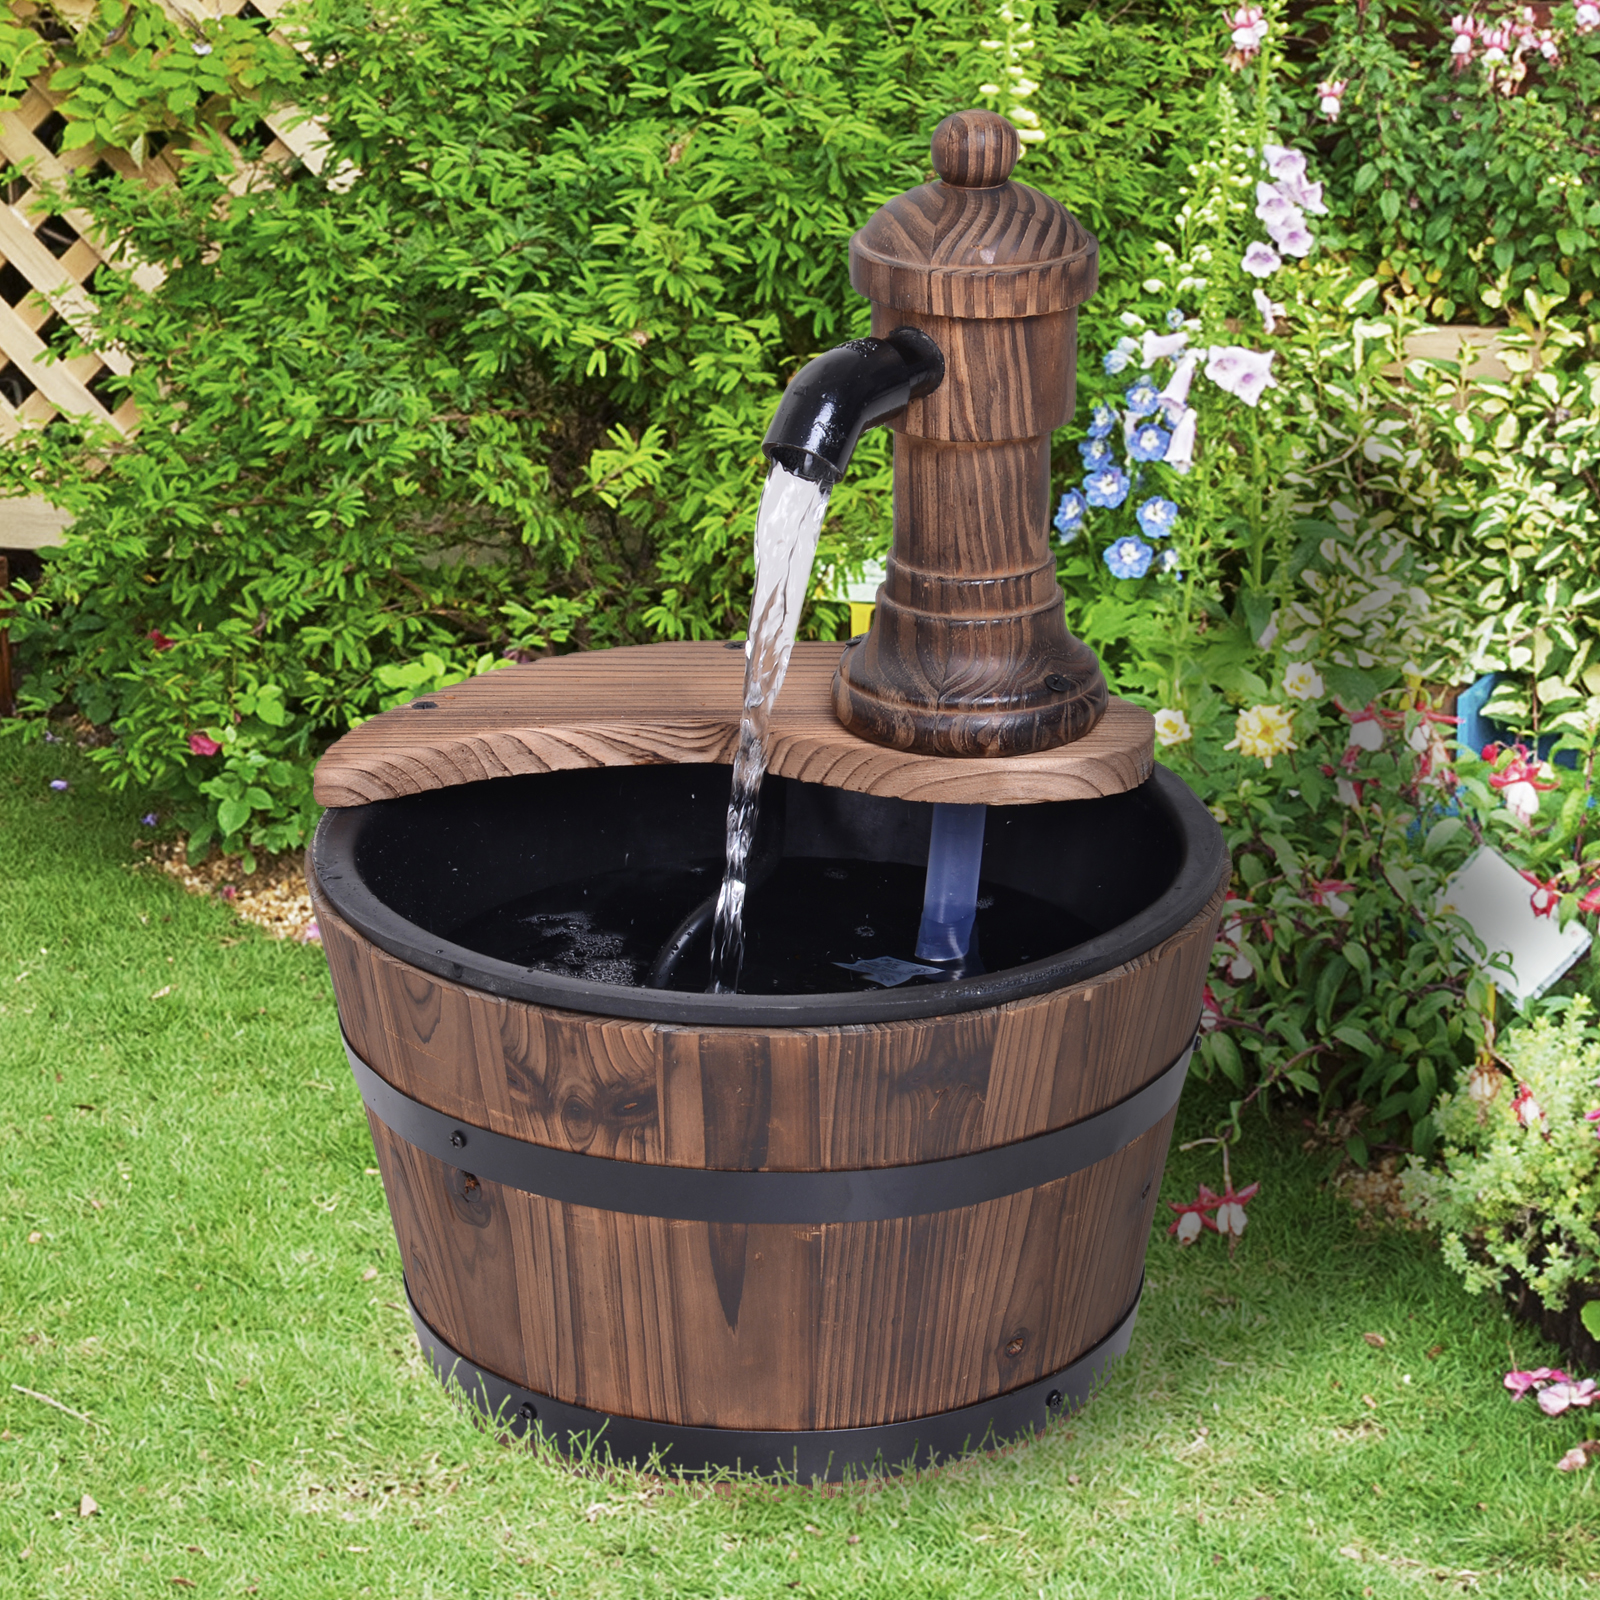 Details about Outsunny Garden Barrel Water Fountain Patio Wood Electric  Water Feature w/ Pump